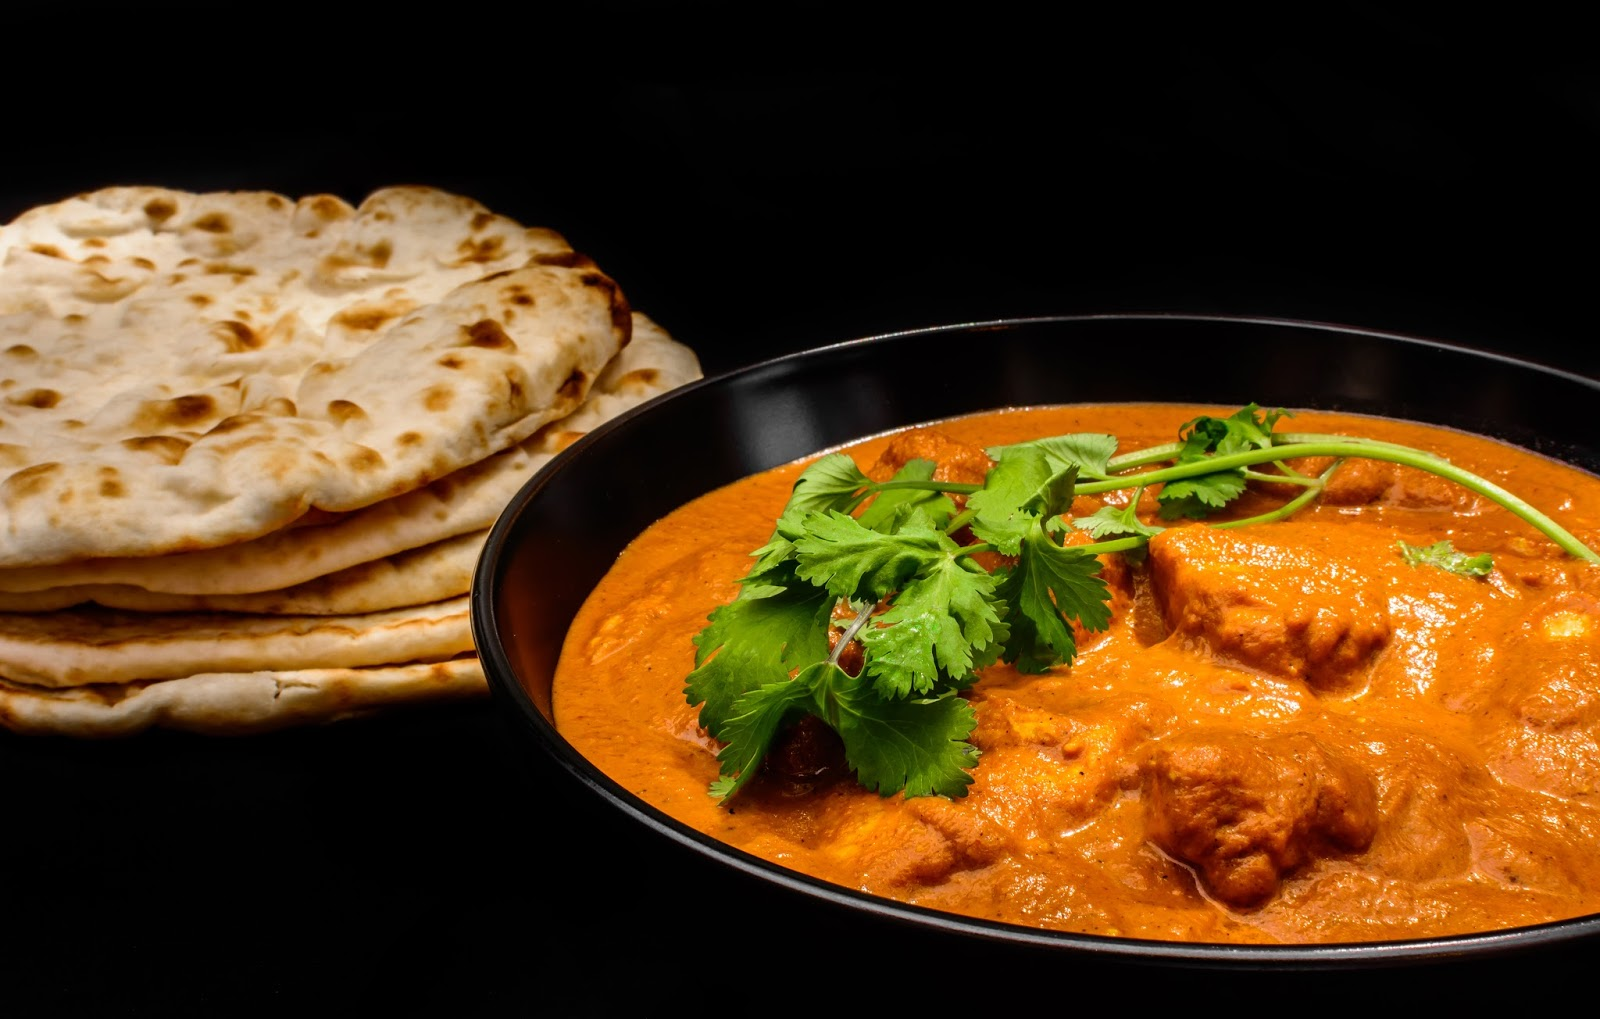 All food considered chicken tikka masala as mentioned previously chicken tikka masala is one of my favorite indian influenced dishes since last sampling this dish at a restaurant forumfinder Images